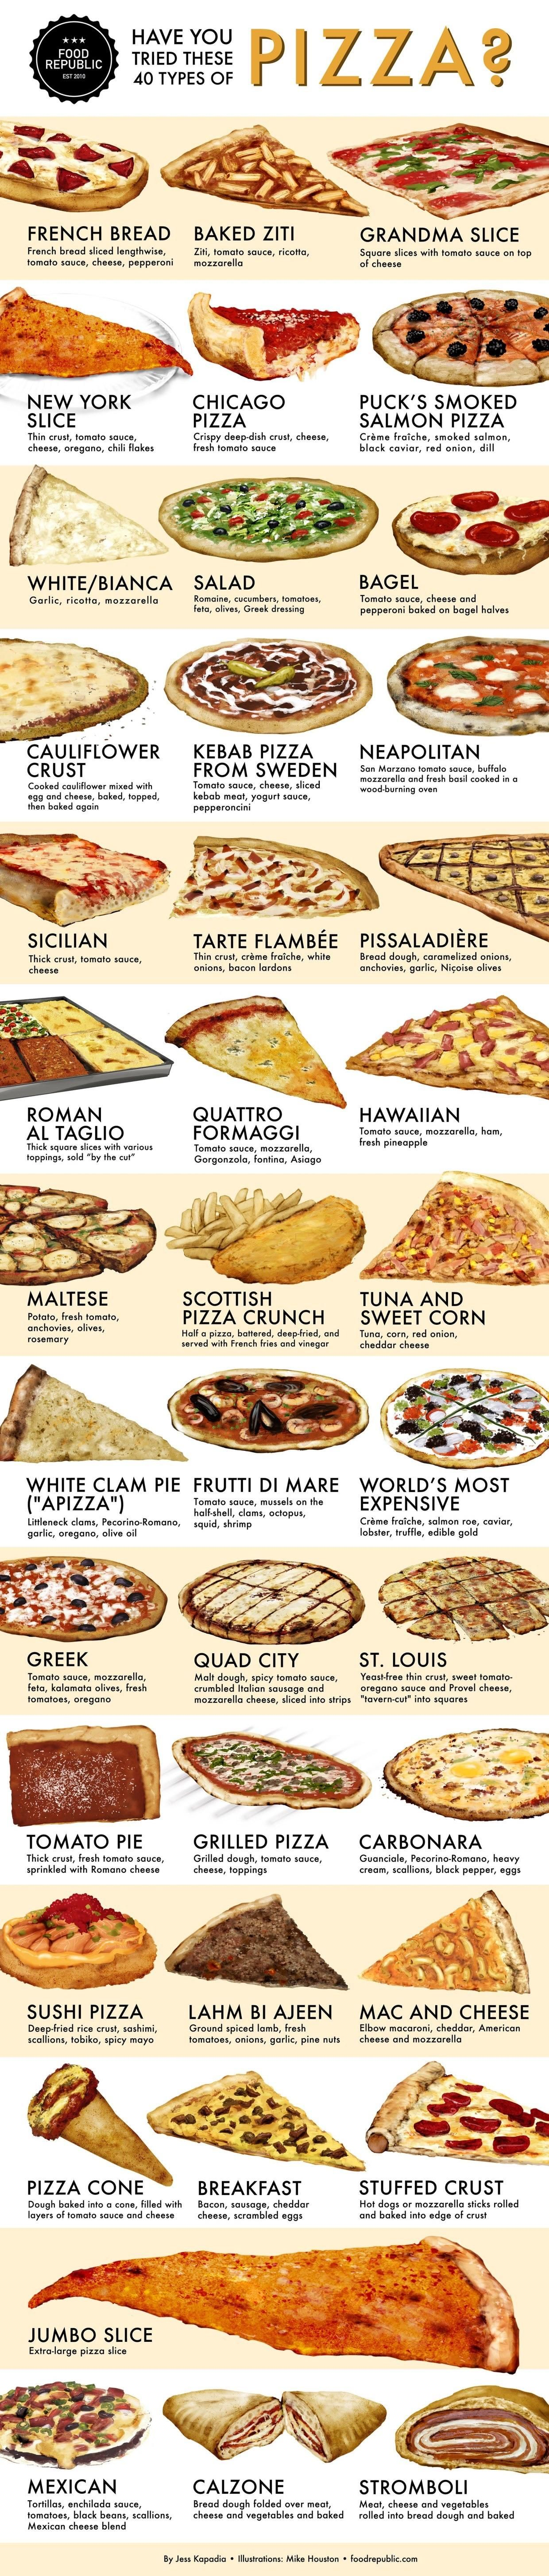 40 types of pizza coolguides Types of pizza, Pizza